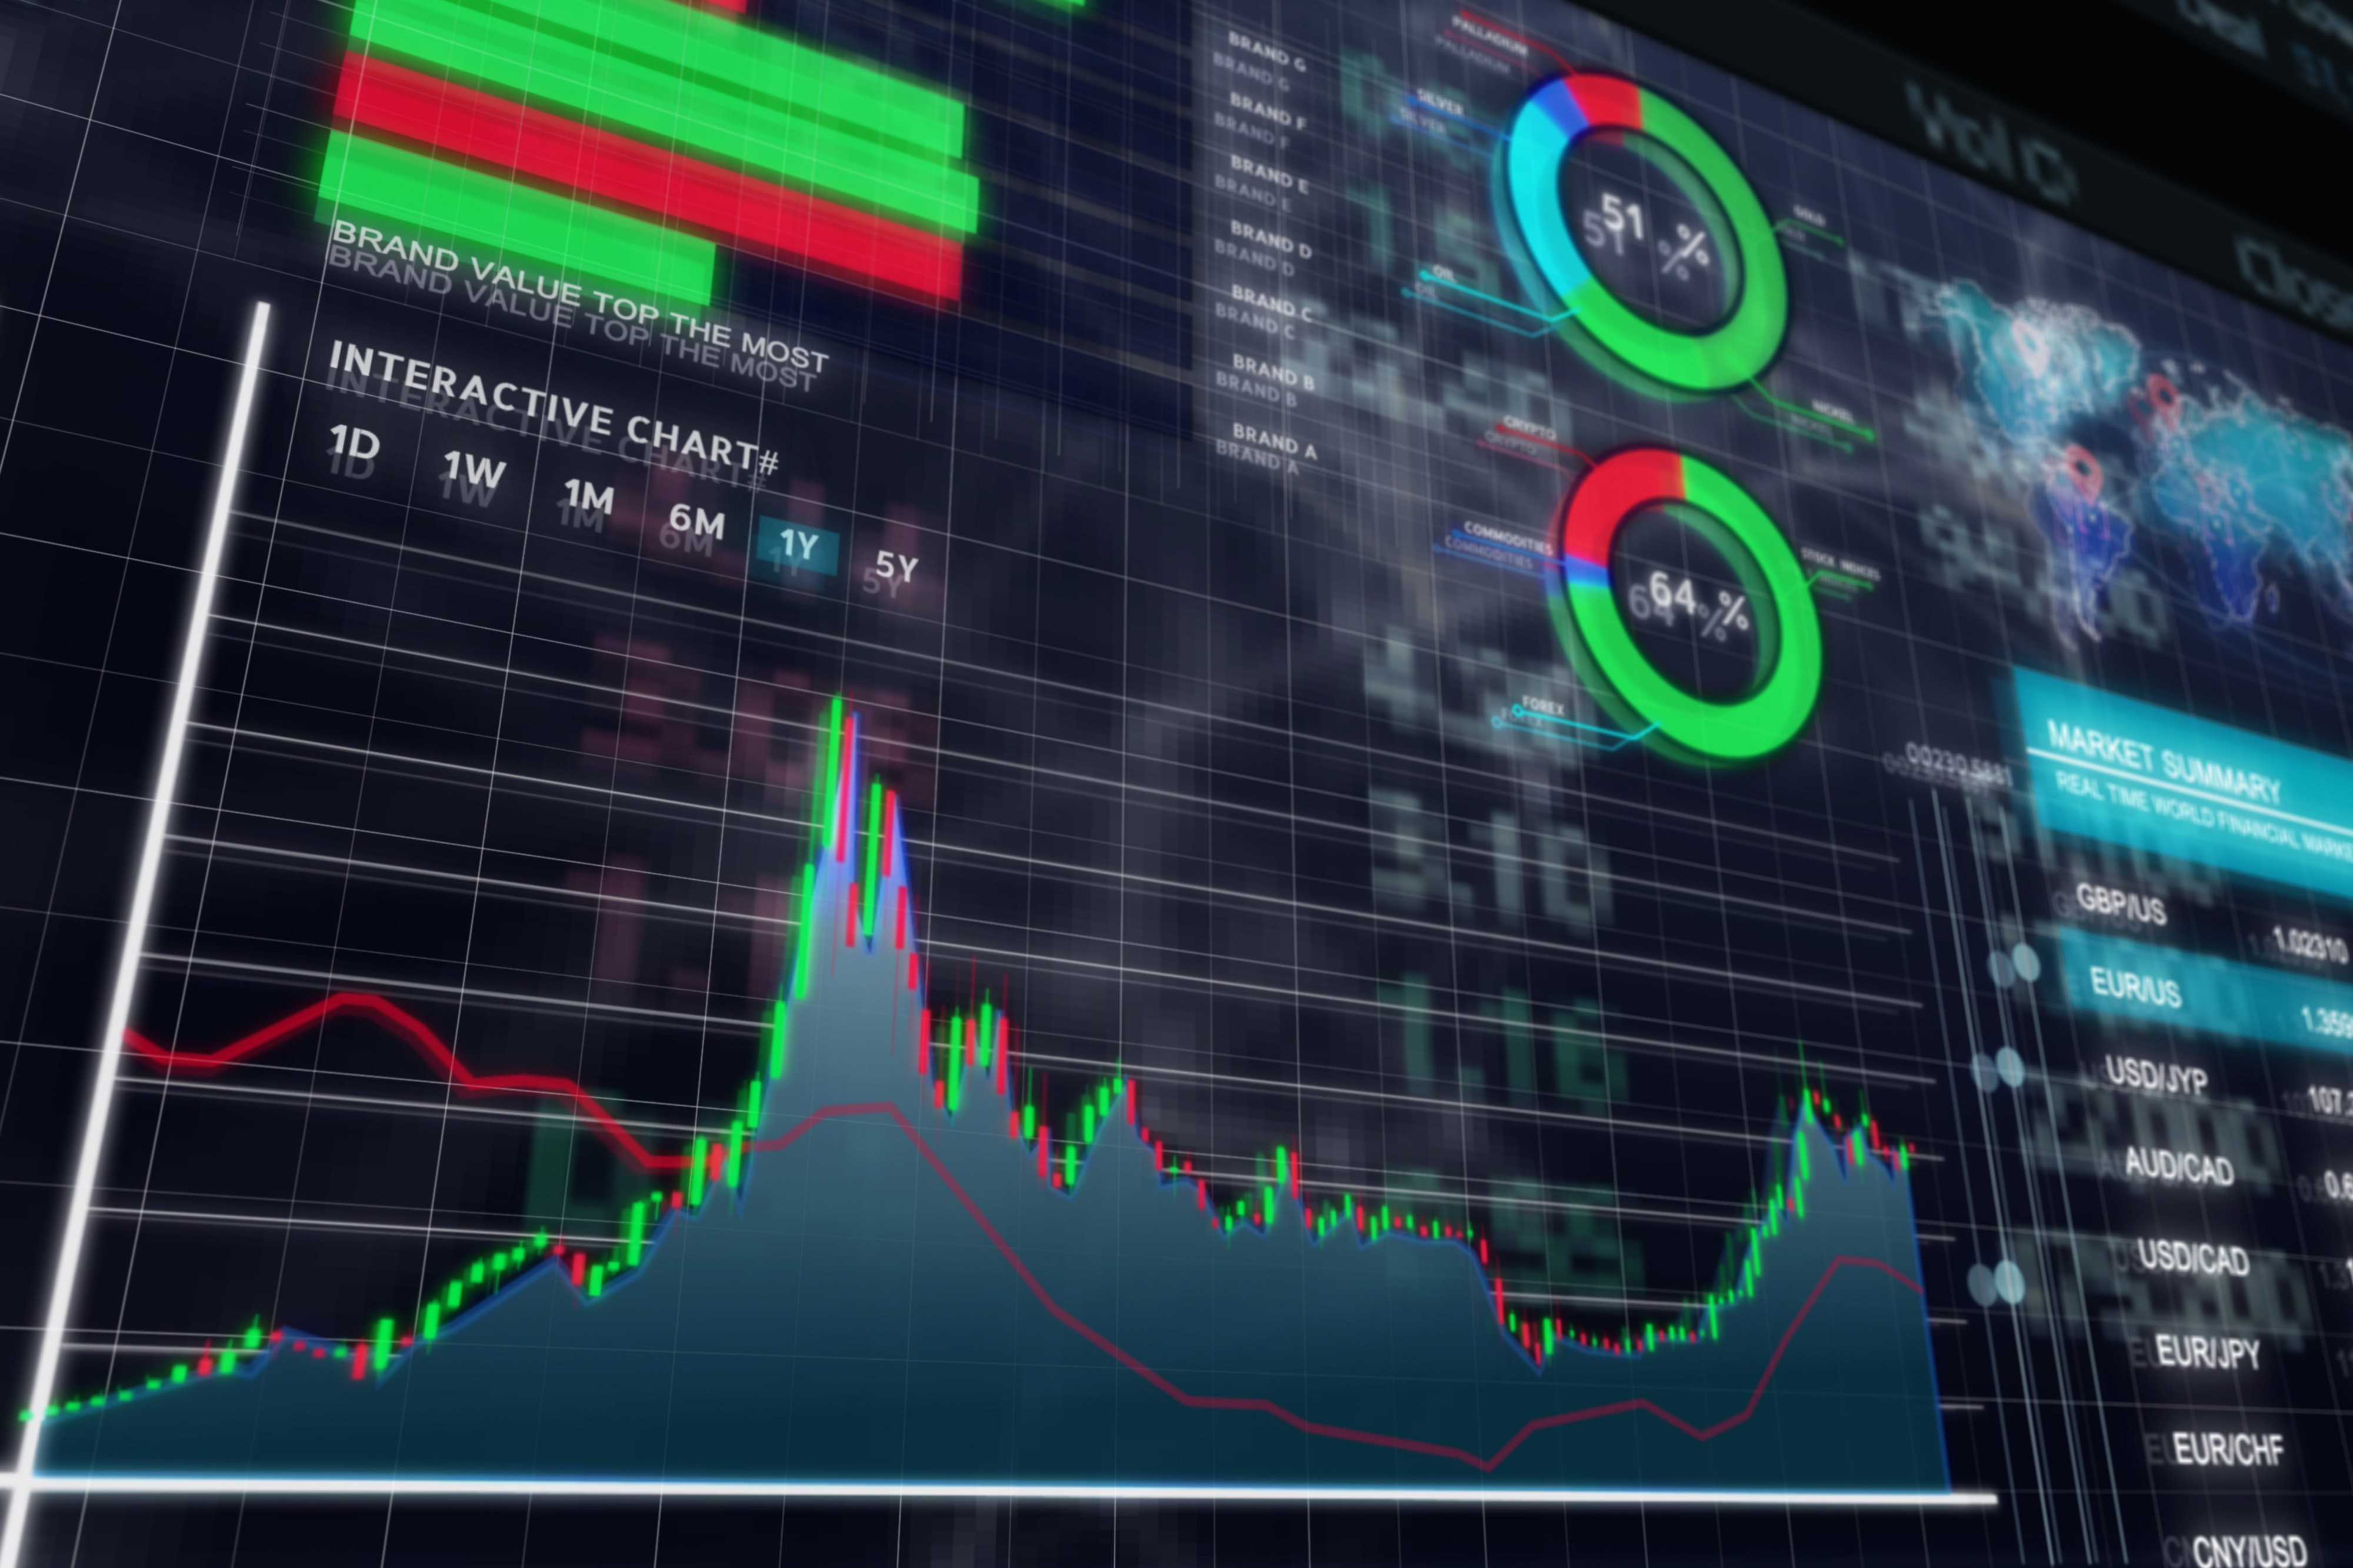 A generic illustration of stock market bar graphs and financial market data.